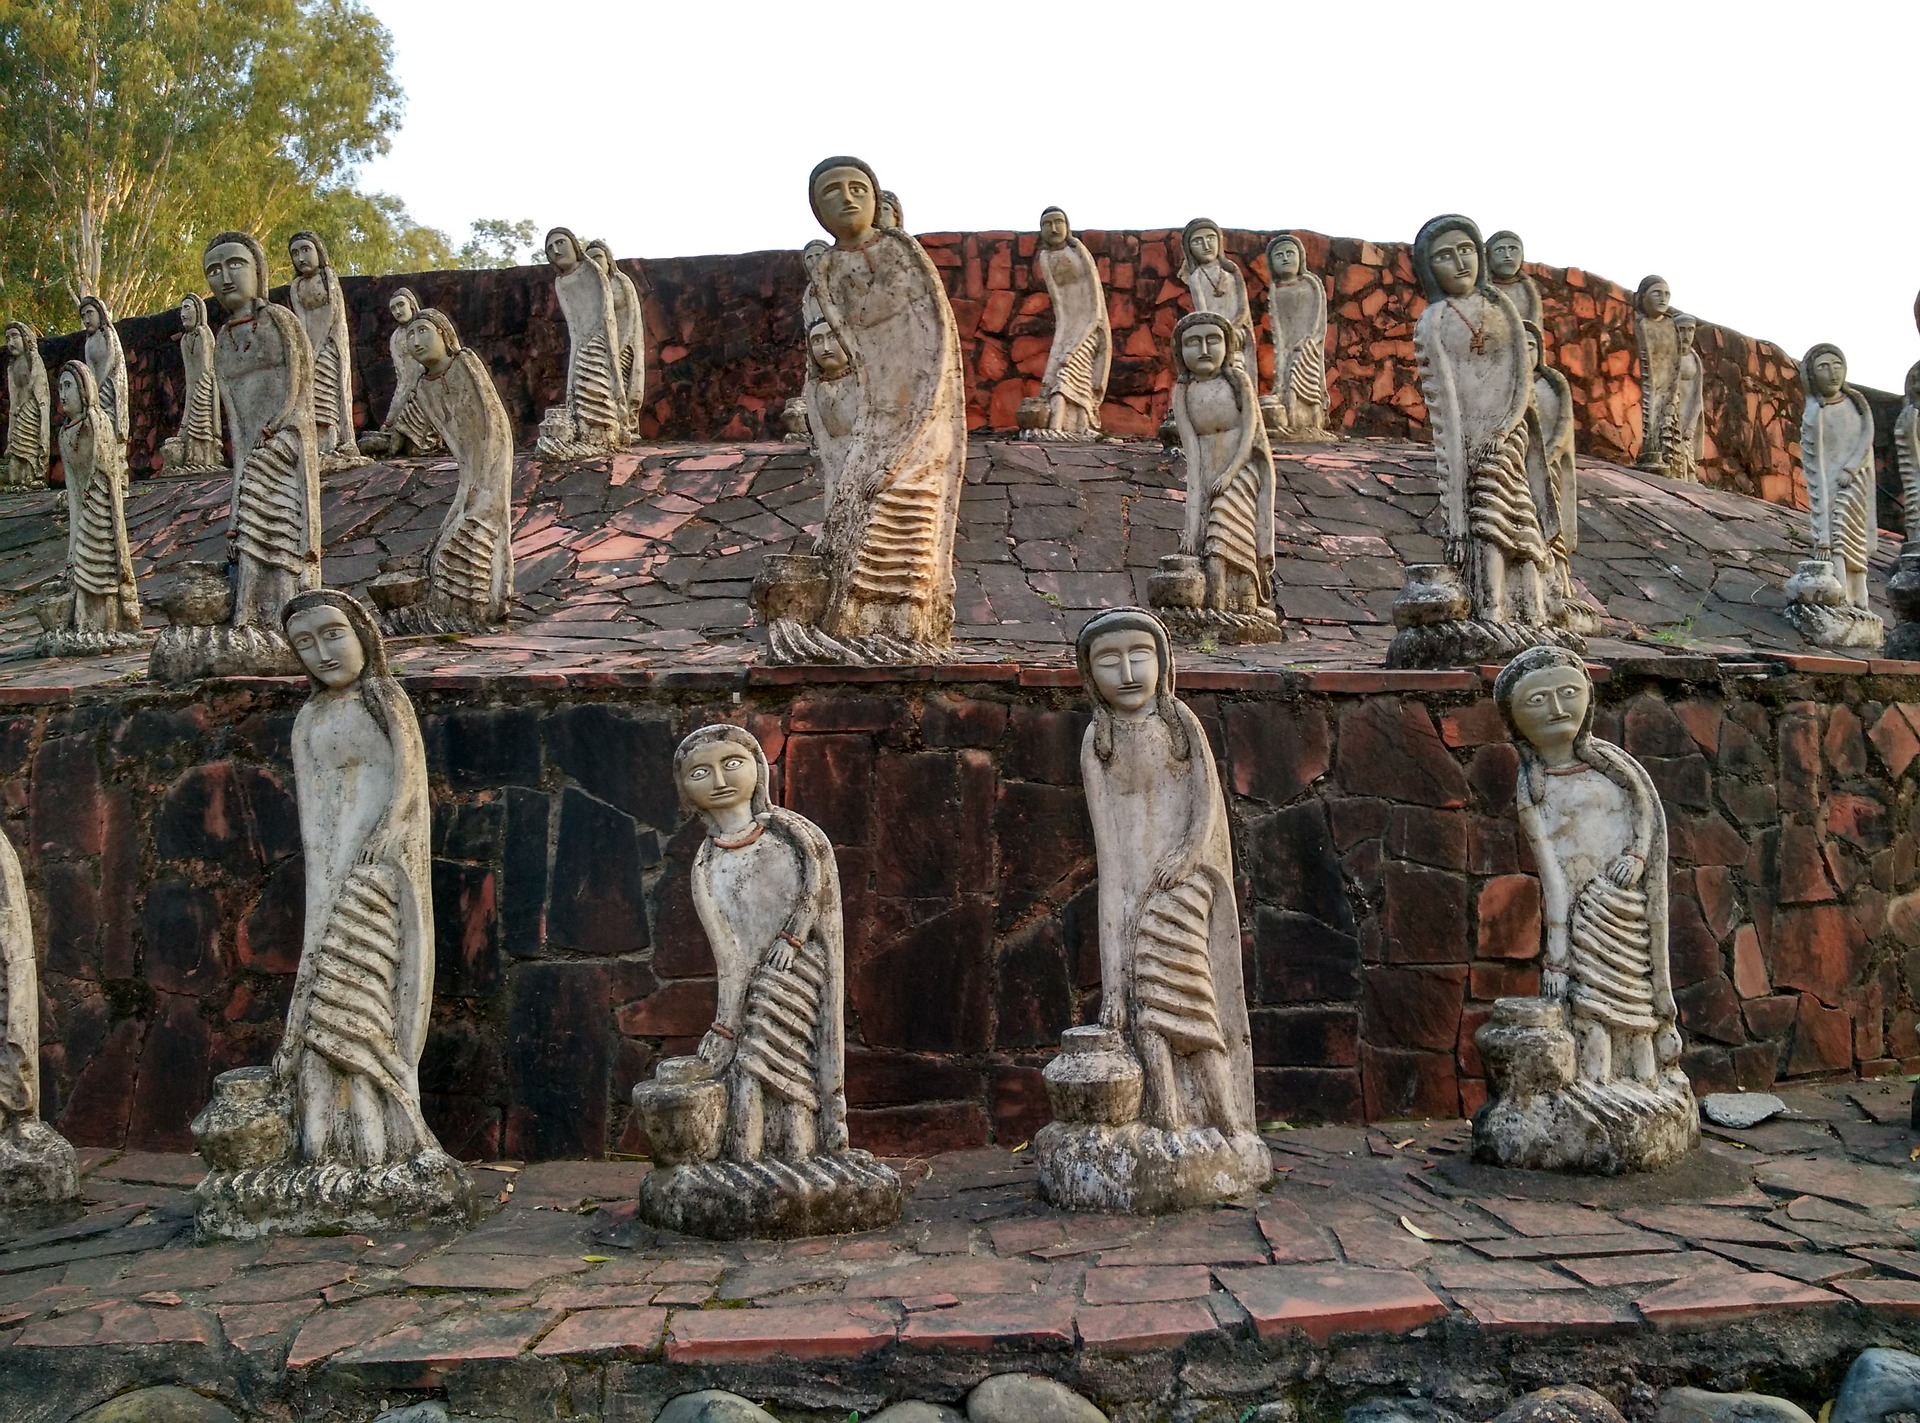 Fabled Hill Stations & The Golden Temple - Rock Garden, Chandigarh, India